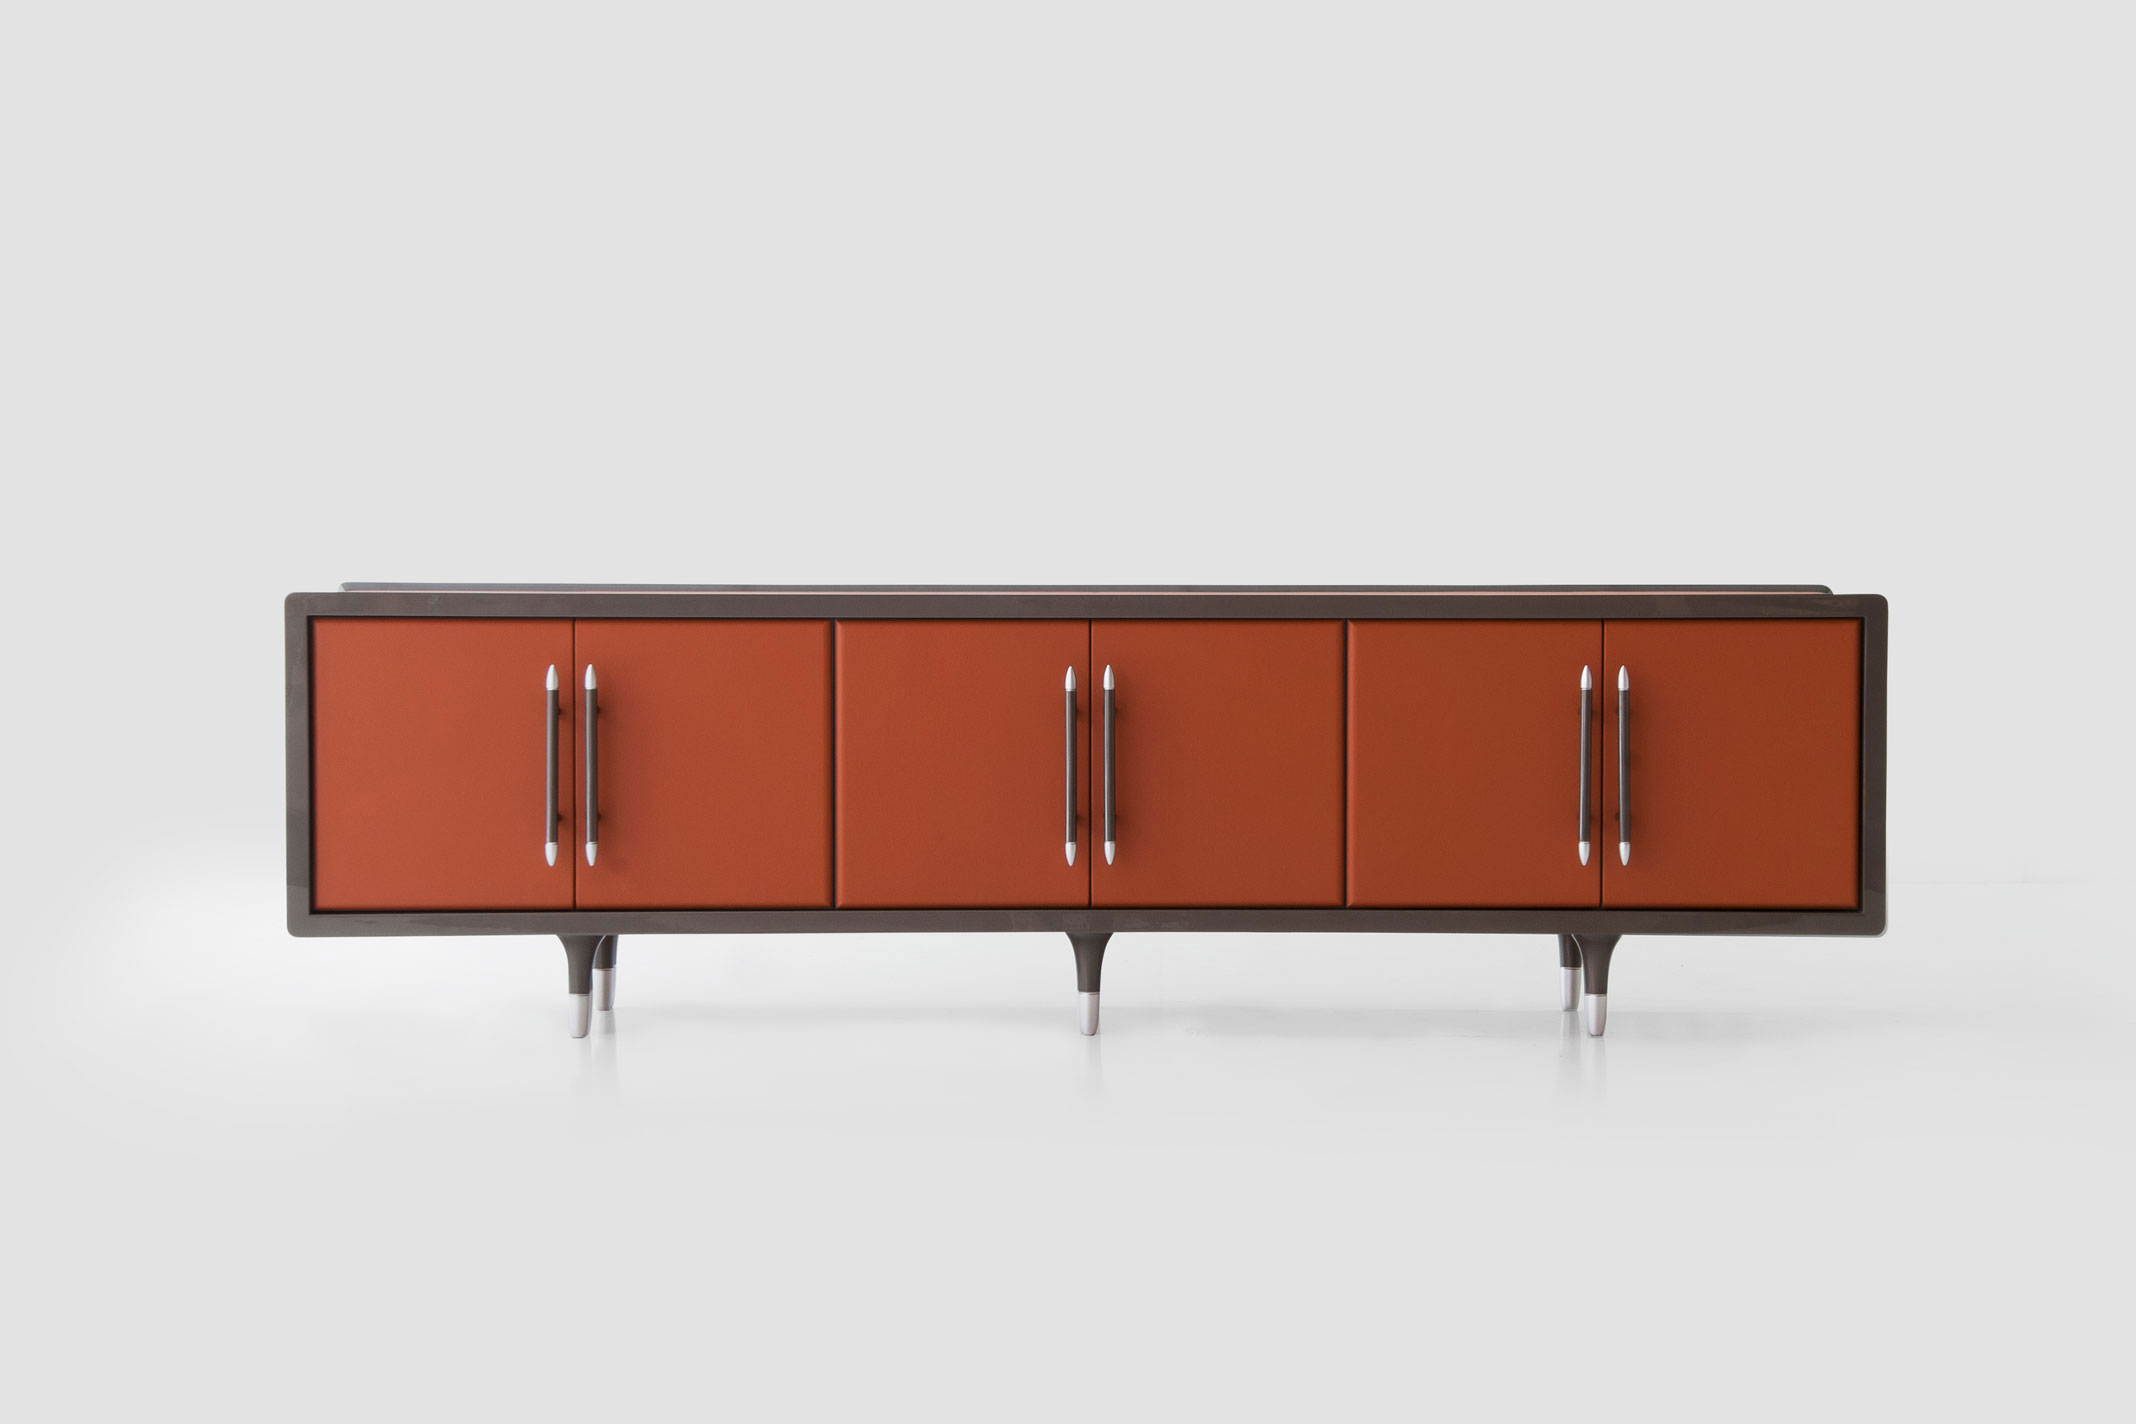 Sideboard by Tecninova. Photo: Courtesy of Tecninova.